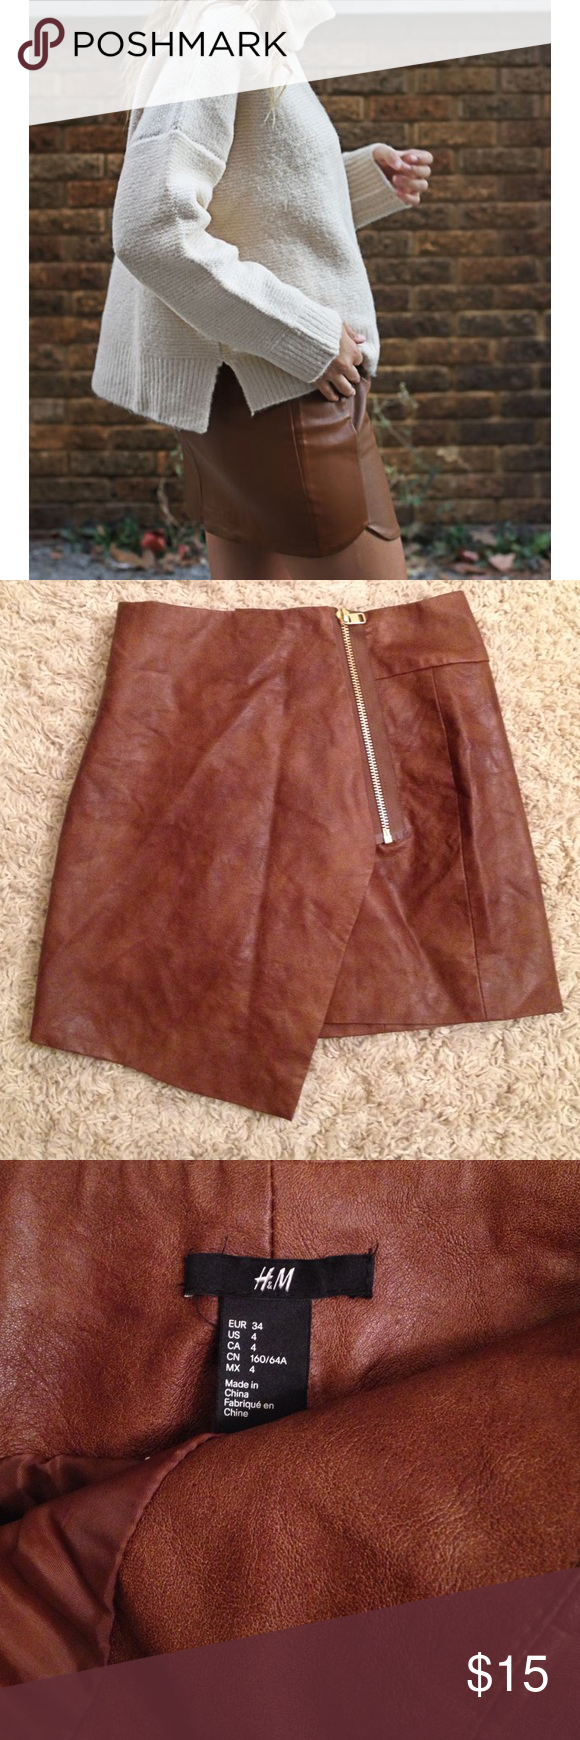 Brown faux leather mini skirt Great condition, stylish skirt great for autumn, current trend. H&M Skirts Mini